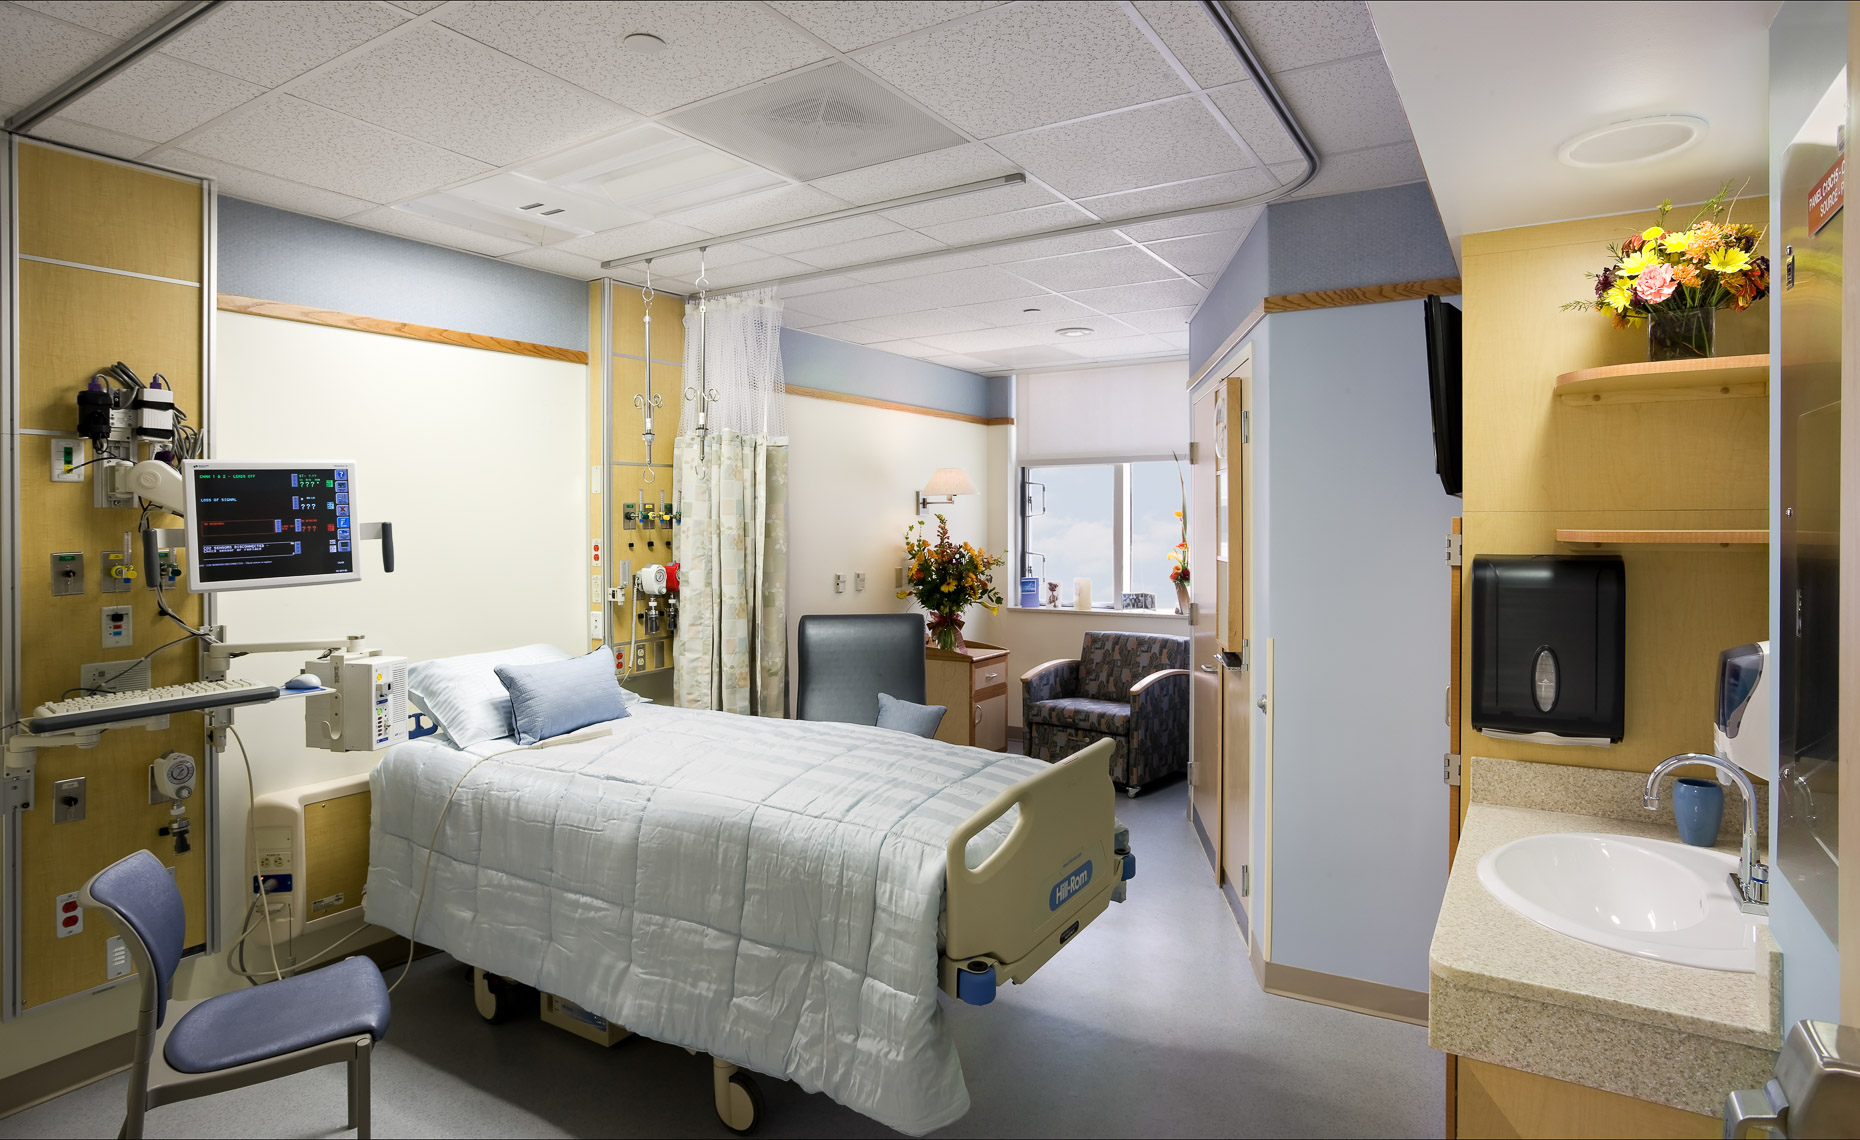 Virginia Hamrick Photography - Hospital Patient Room - Medical